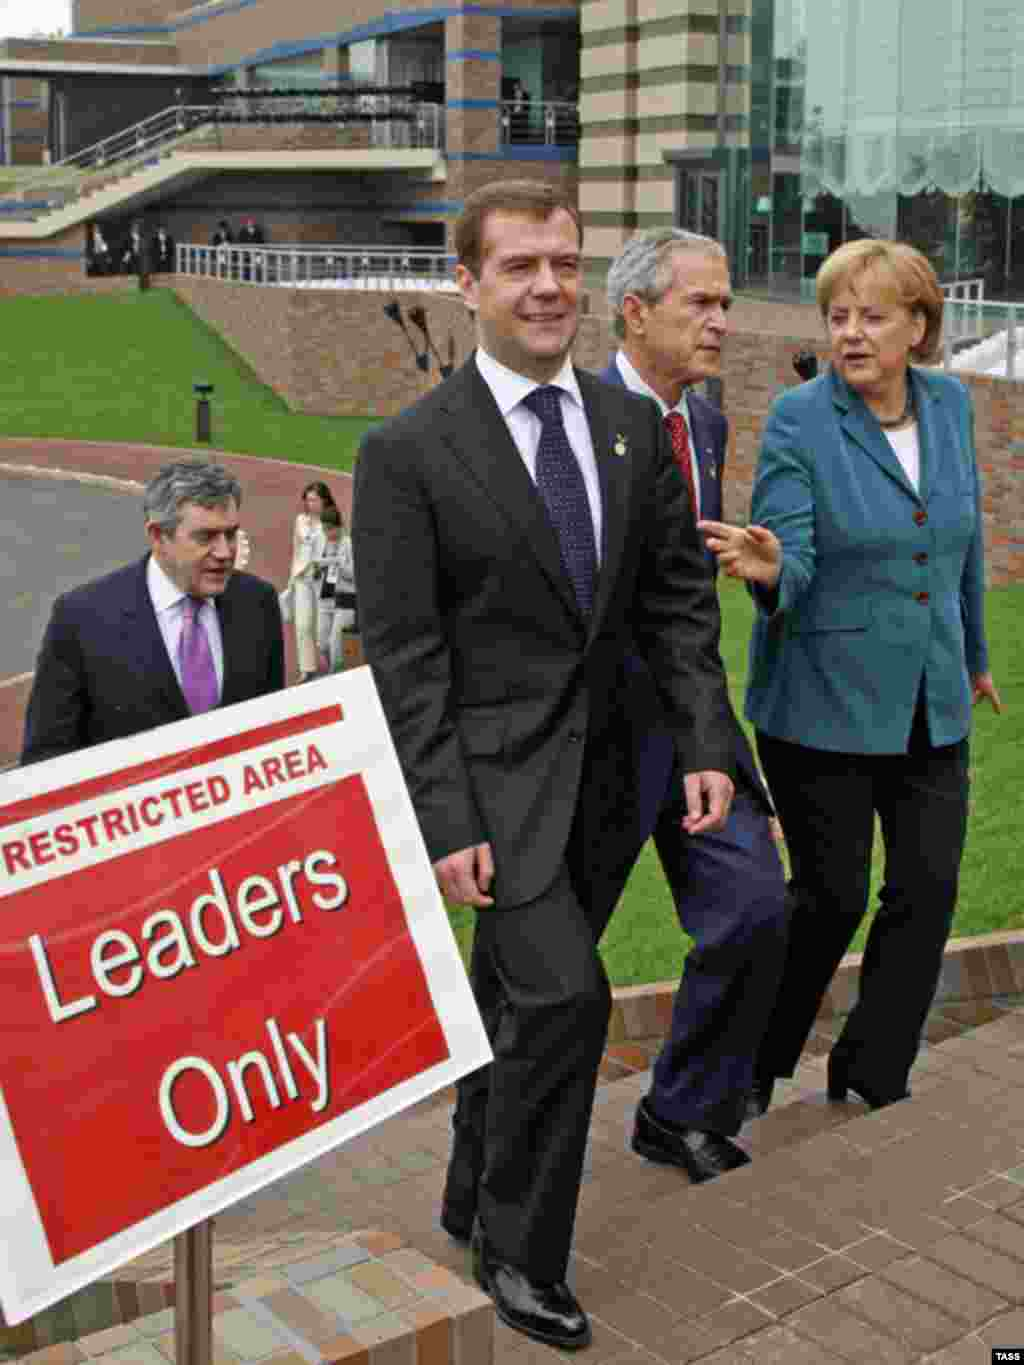 World leaders - Group of Eight meeting in Japan -- (left to right) British Prime Minister Gordon Brown, Russian President Dmitry Medvedev, U.S. President George W. Bush, and German Chancellor Angela Merkel at summit in Tokyo, July 9, 2008